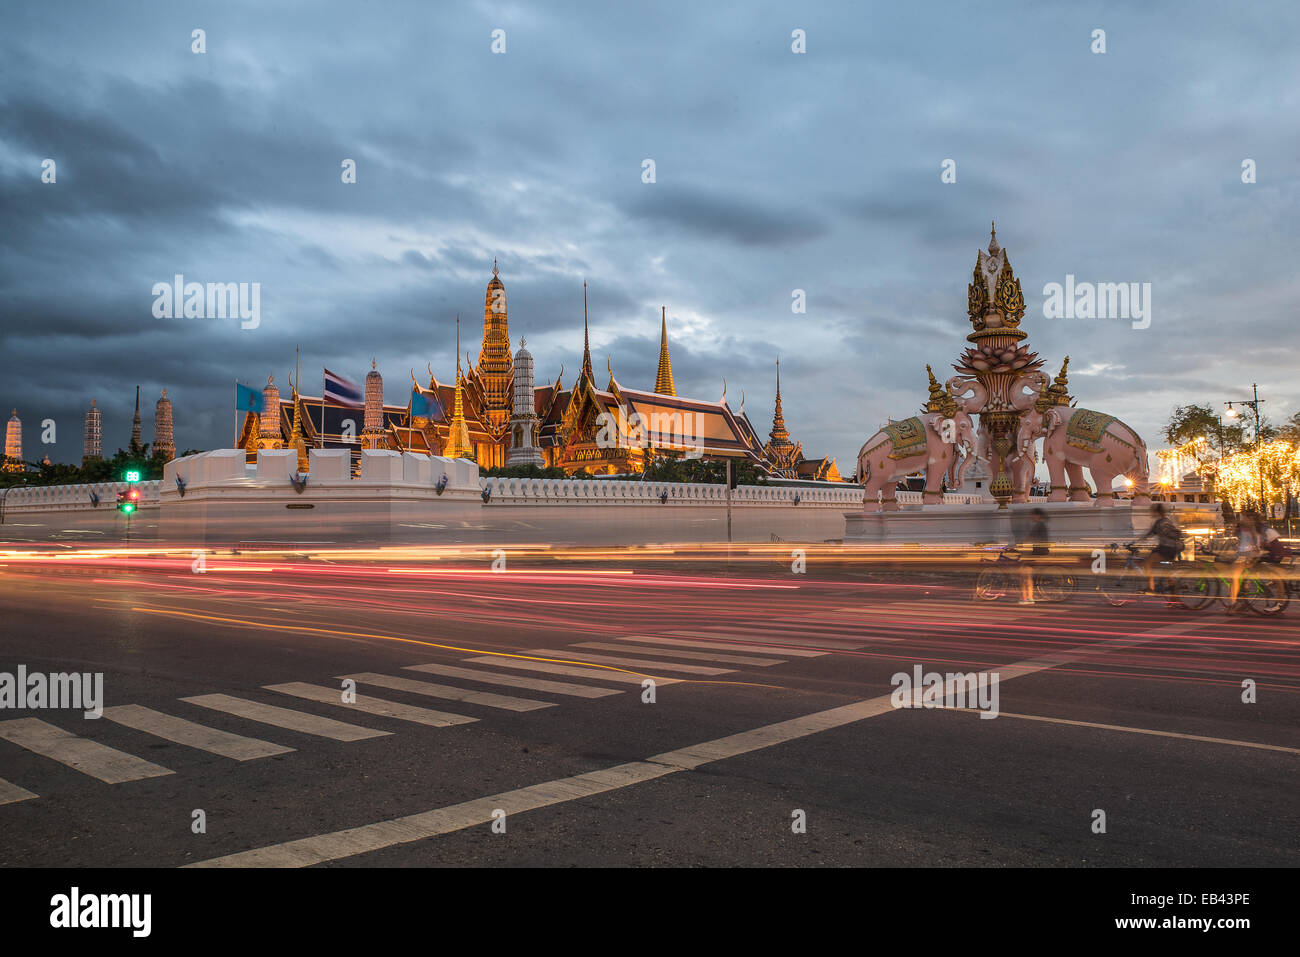 Temple of the Emerald Buddha.(Wat Phra Kaew.) Bangkok, Thailand. - Stock Image